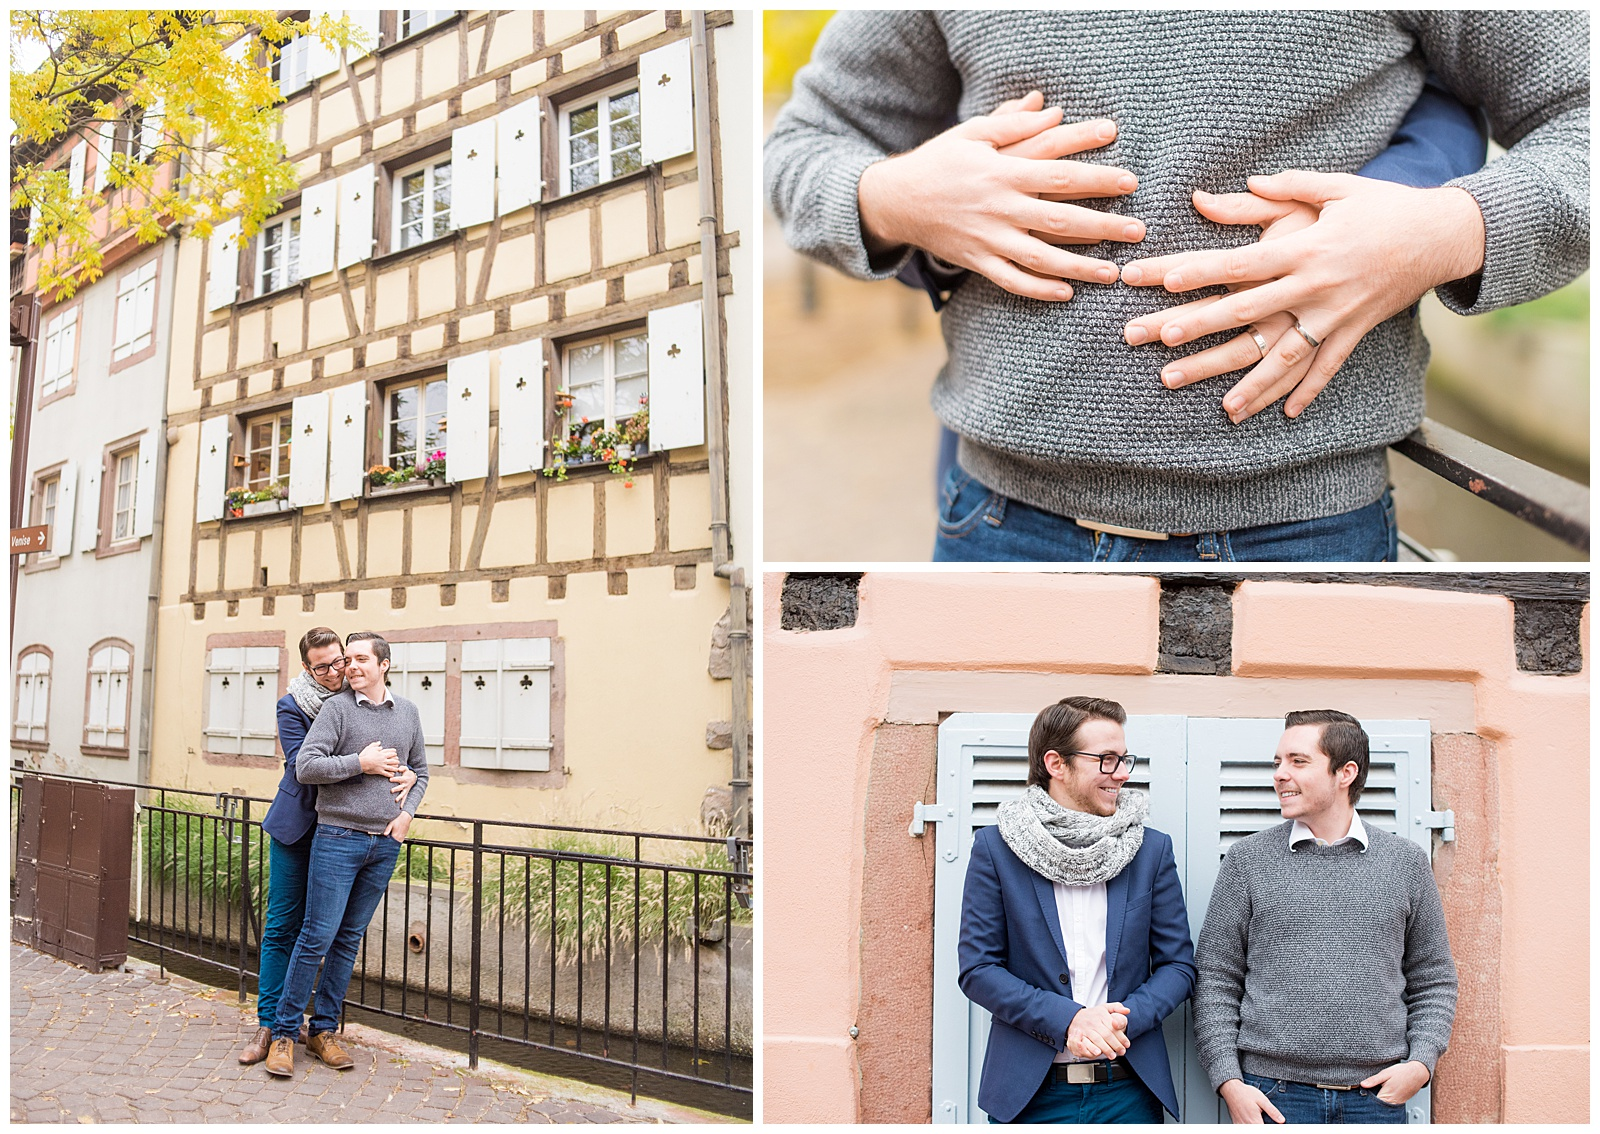 france-engagement-shoot-4